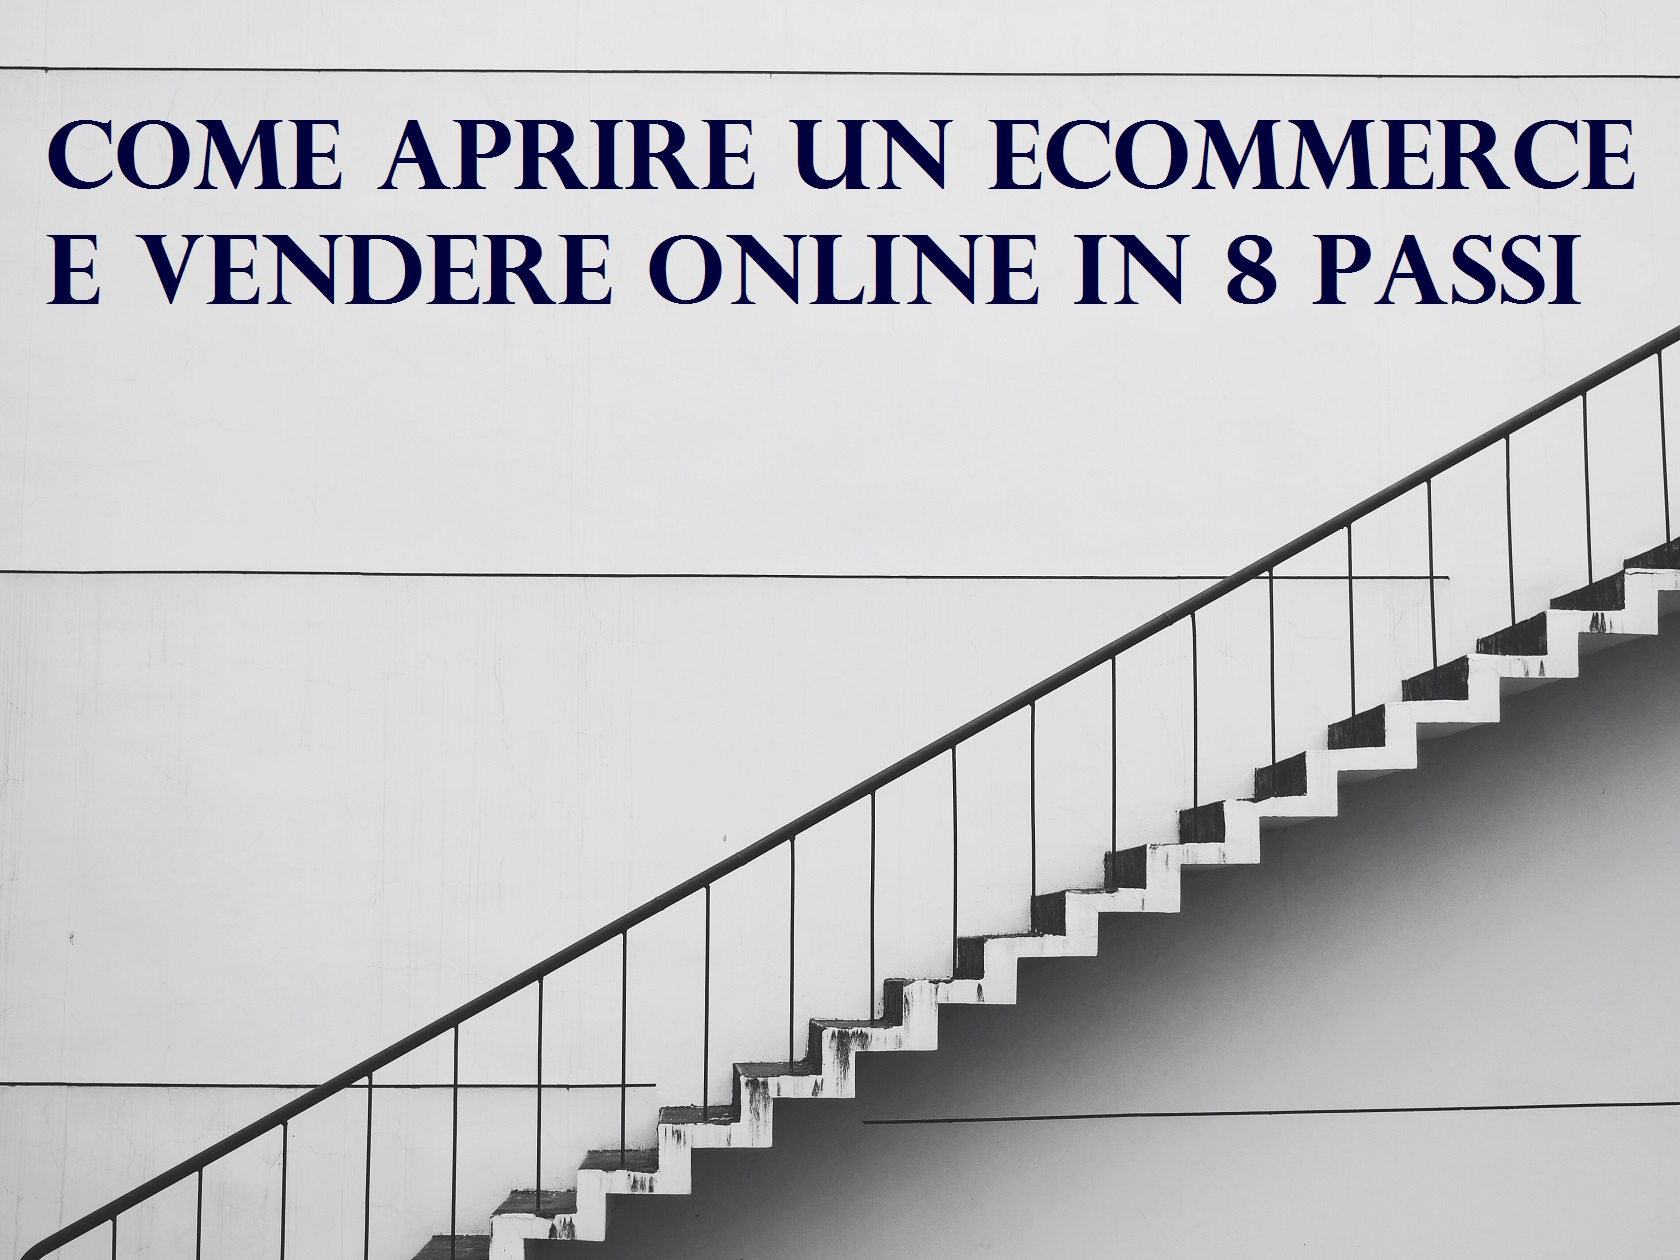 Come aprire un ecommerce e vendere online in 8 passi - Segui la scala step by step